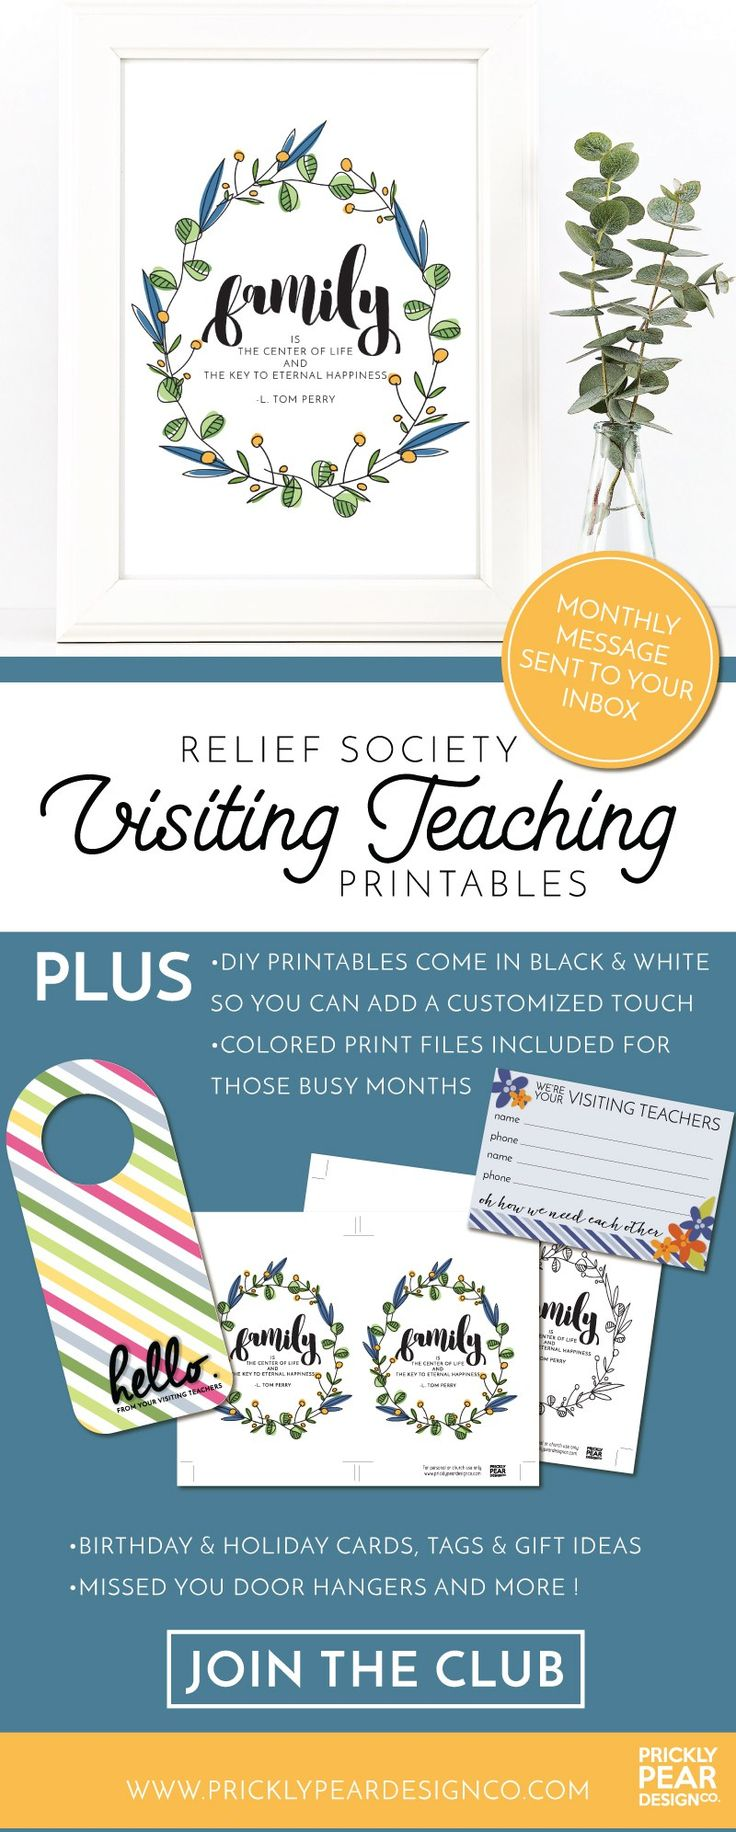 202 best relief society visiting teaching images on pinterest relief society visiting teaching printable club these printables are amazing negle Image collections